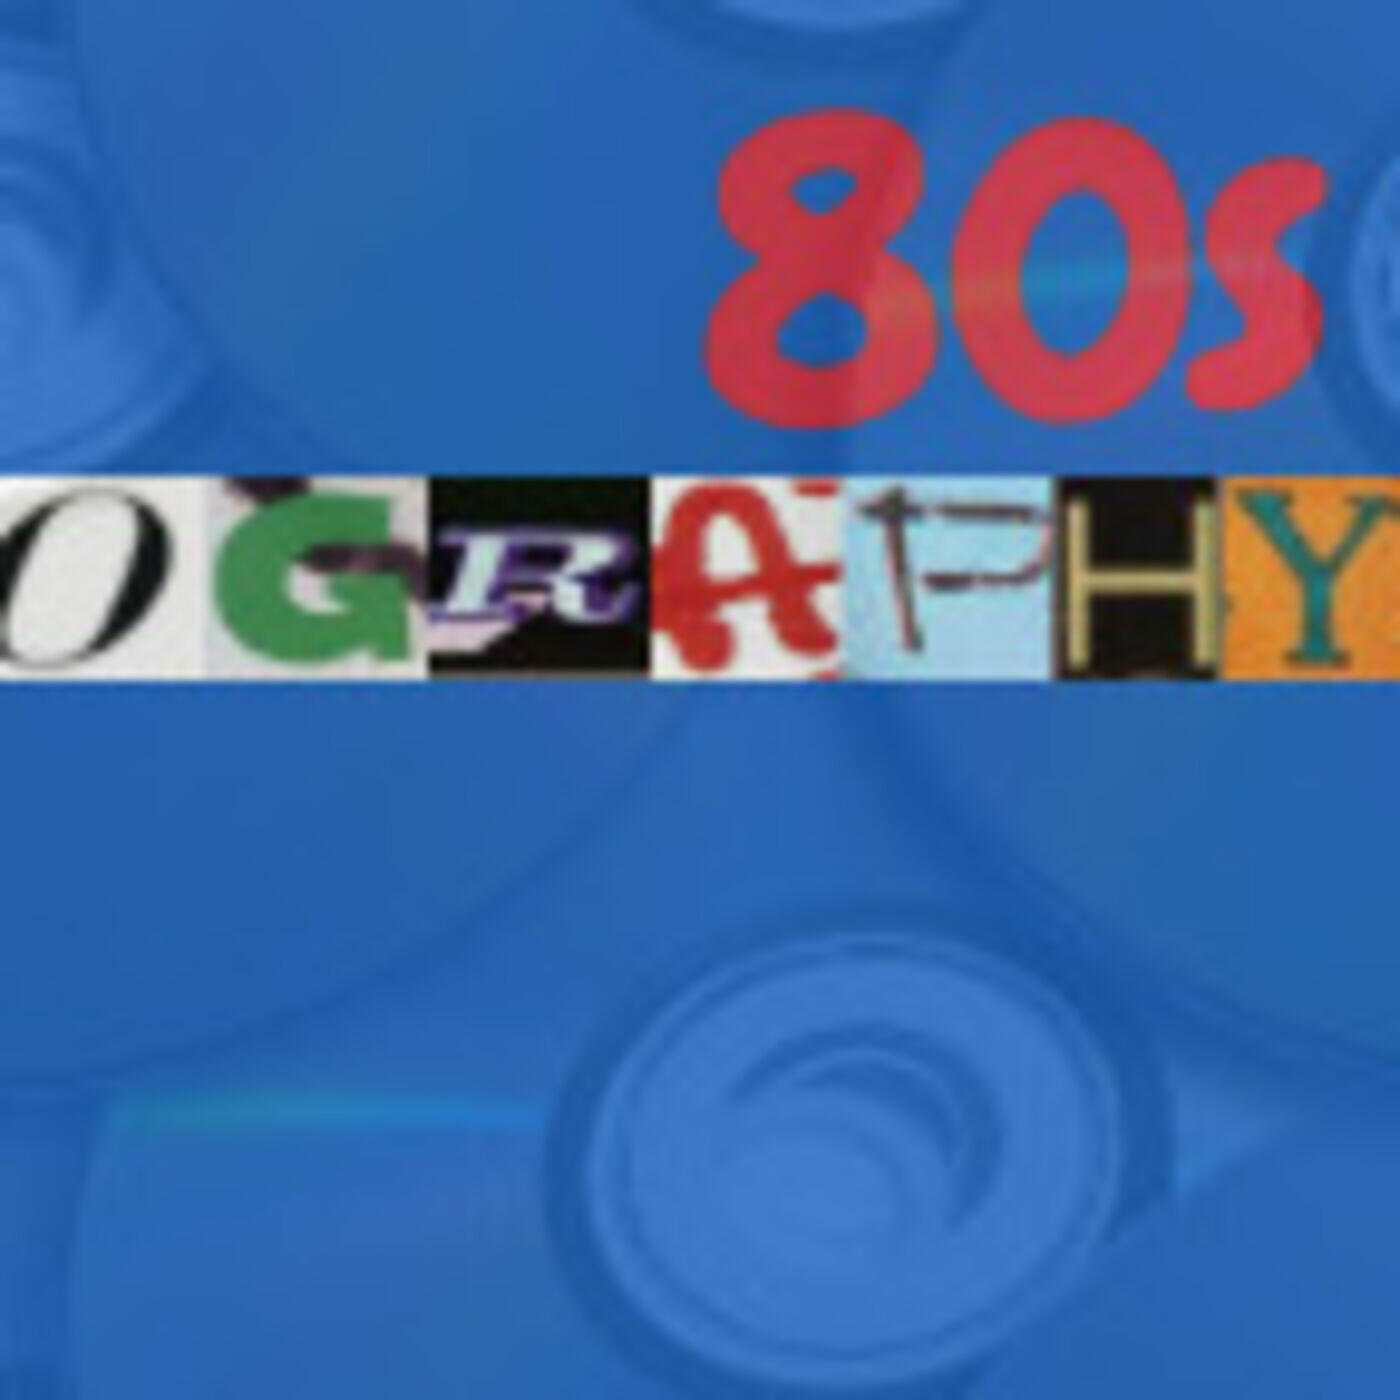 80sography - 80s music one artist at a time